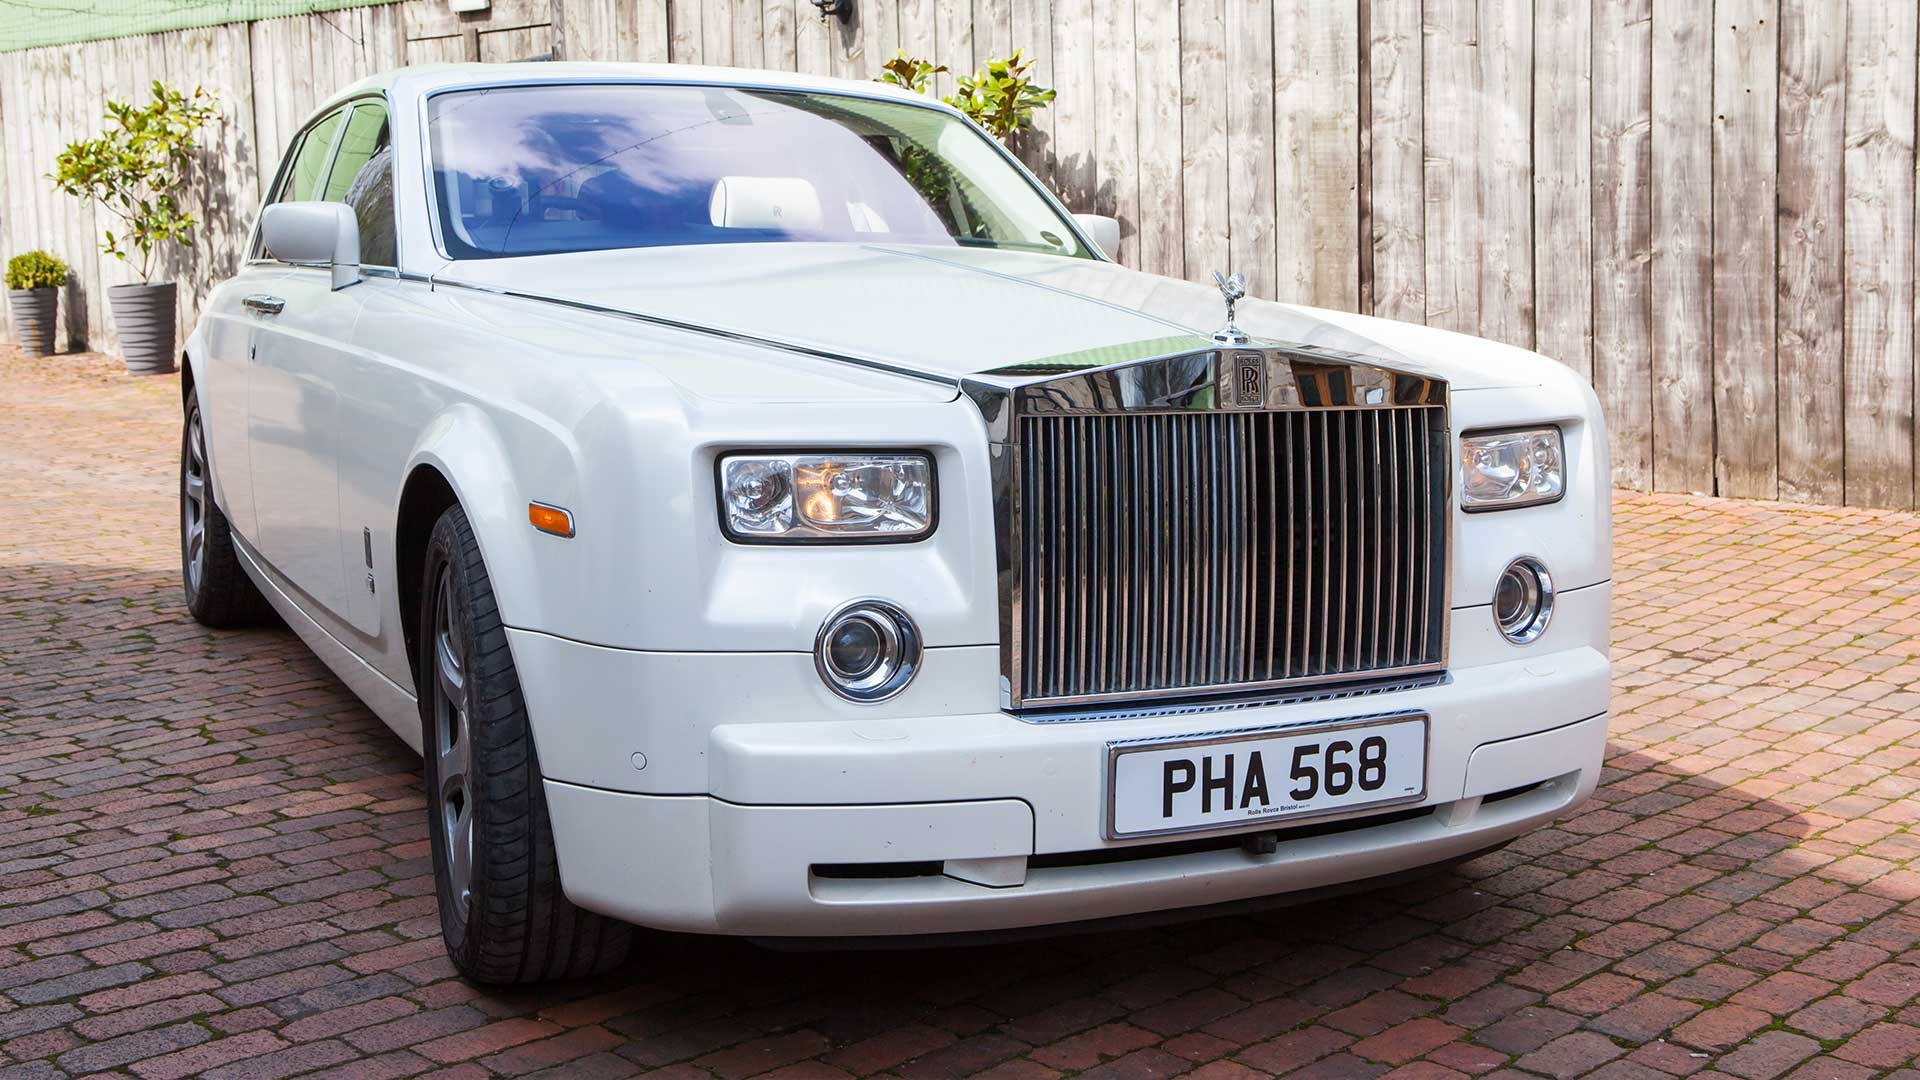 The Rolls-Royce Phantom in Pearlescent White